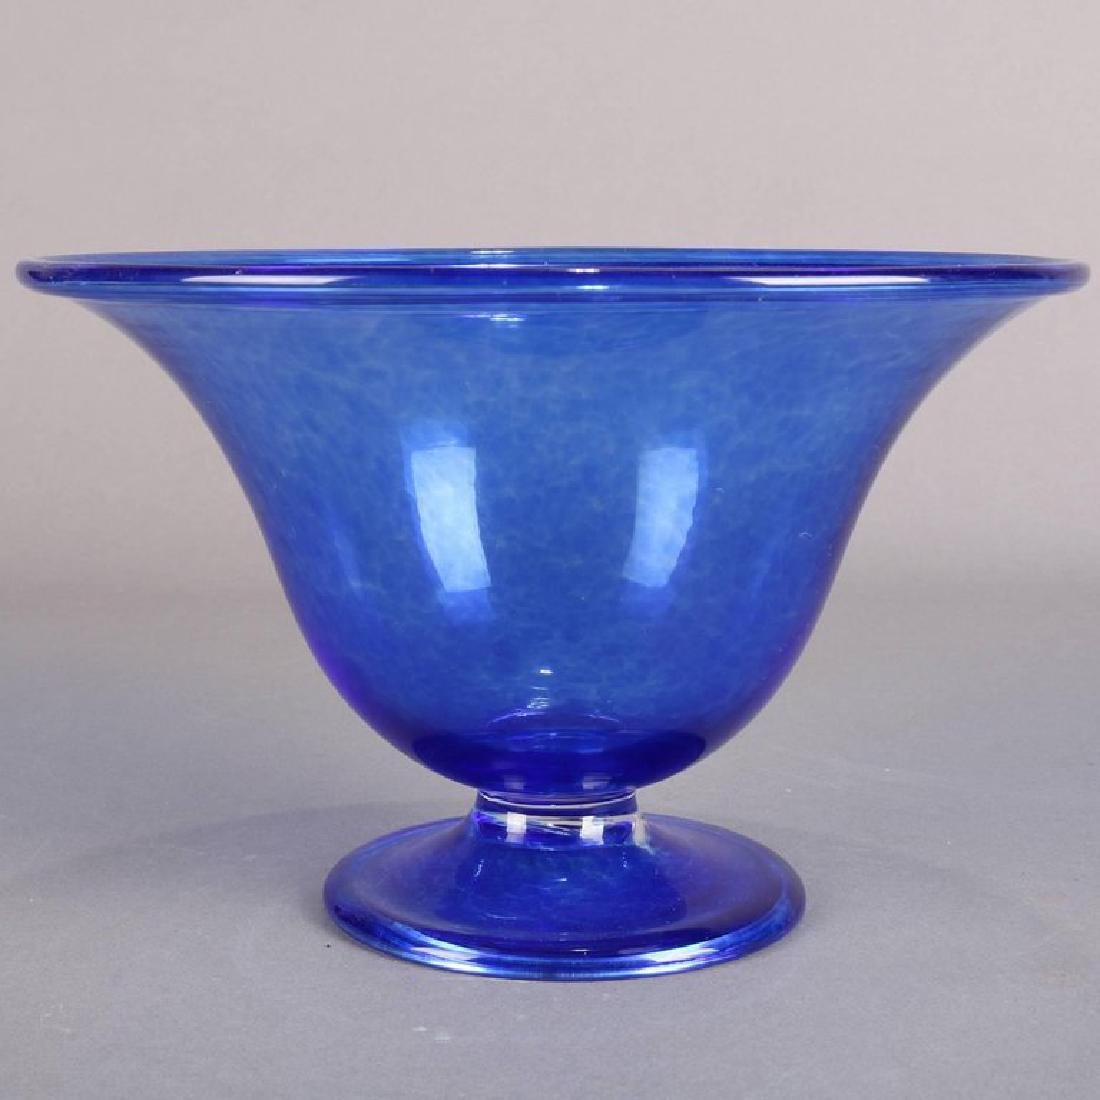 Steuben's Corning Museum of Glass Cobalt Blown Compote - 2